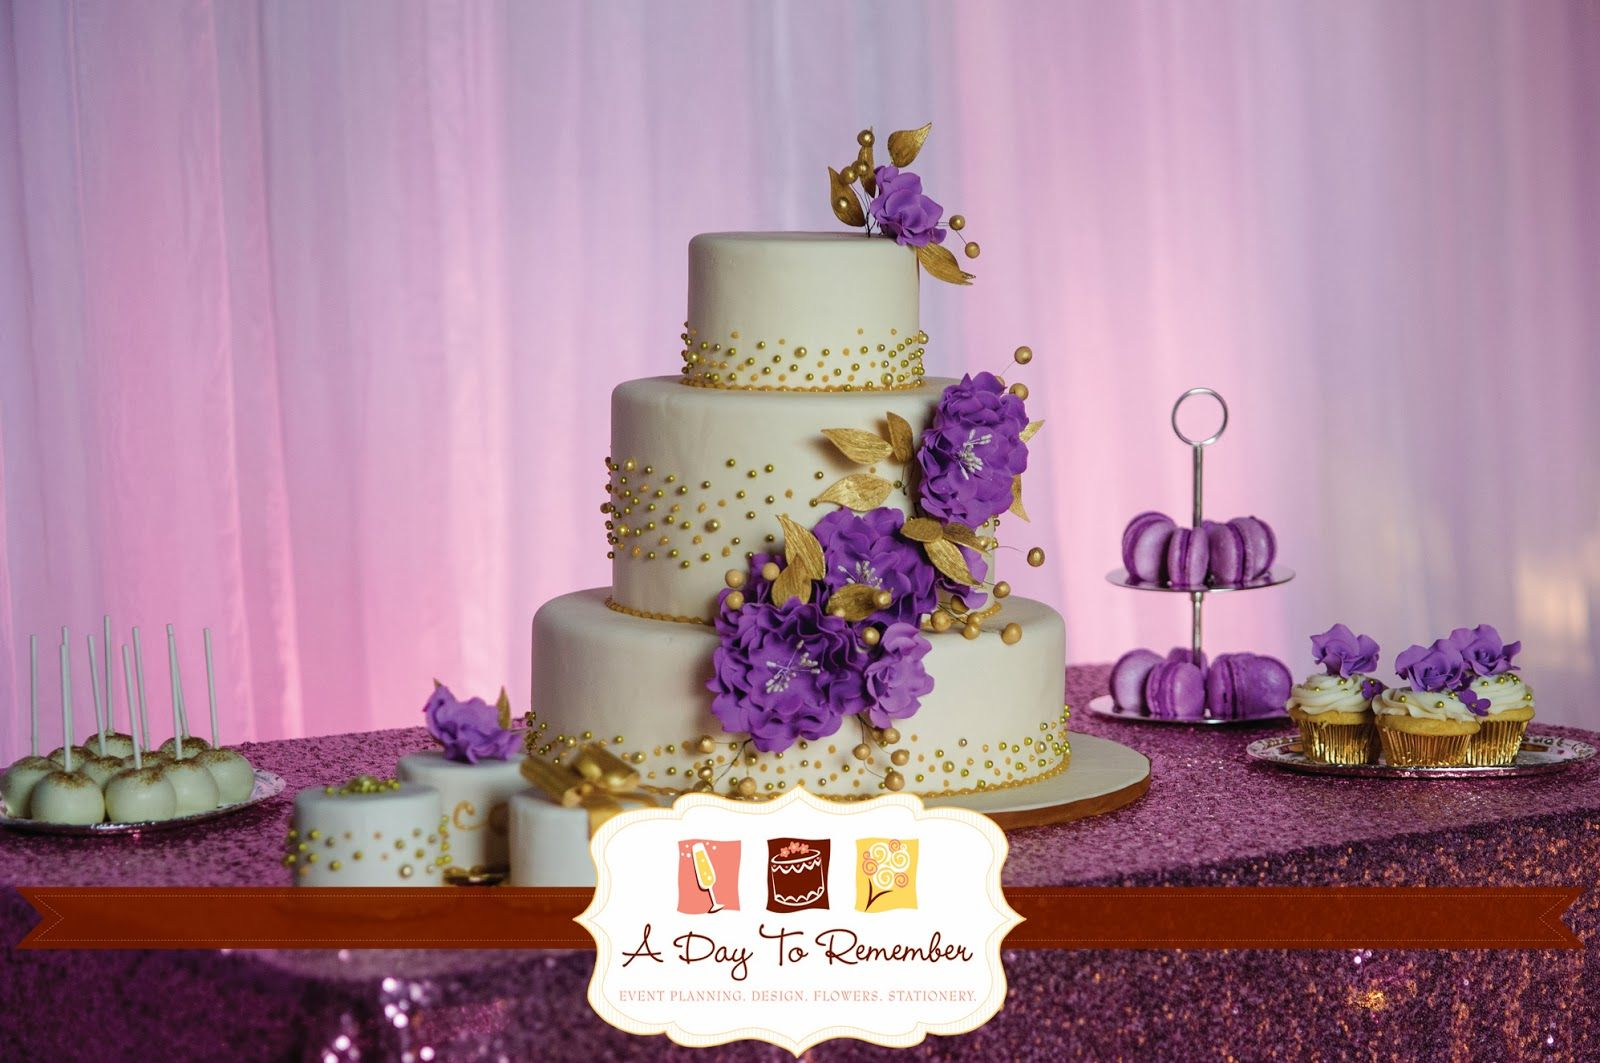 Having a little glitz never hurts! A gorgeous cake, exquisite desserts!  Urban Glitz styled shoot we designed. We drew our inspiration from #Pantone's Color of 2014:  #RadiantOrchid  #DayToRemember #DayToRememberPlanning #DayToRememberDesign #DayToRememberEvents #LuxuryWeddings #StyledShoot #Gold #Glitter #HoustonWeddingPlanner #LuxuryWeddingPlanner www.daytoremember.net Photo Credit: Motley Melange